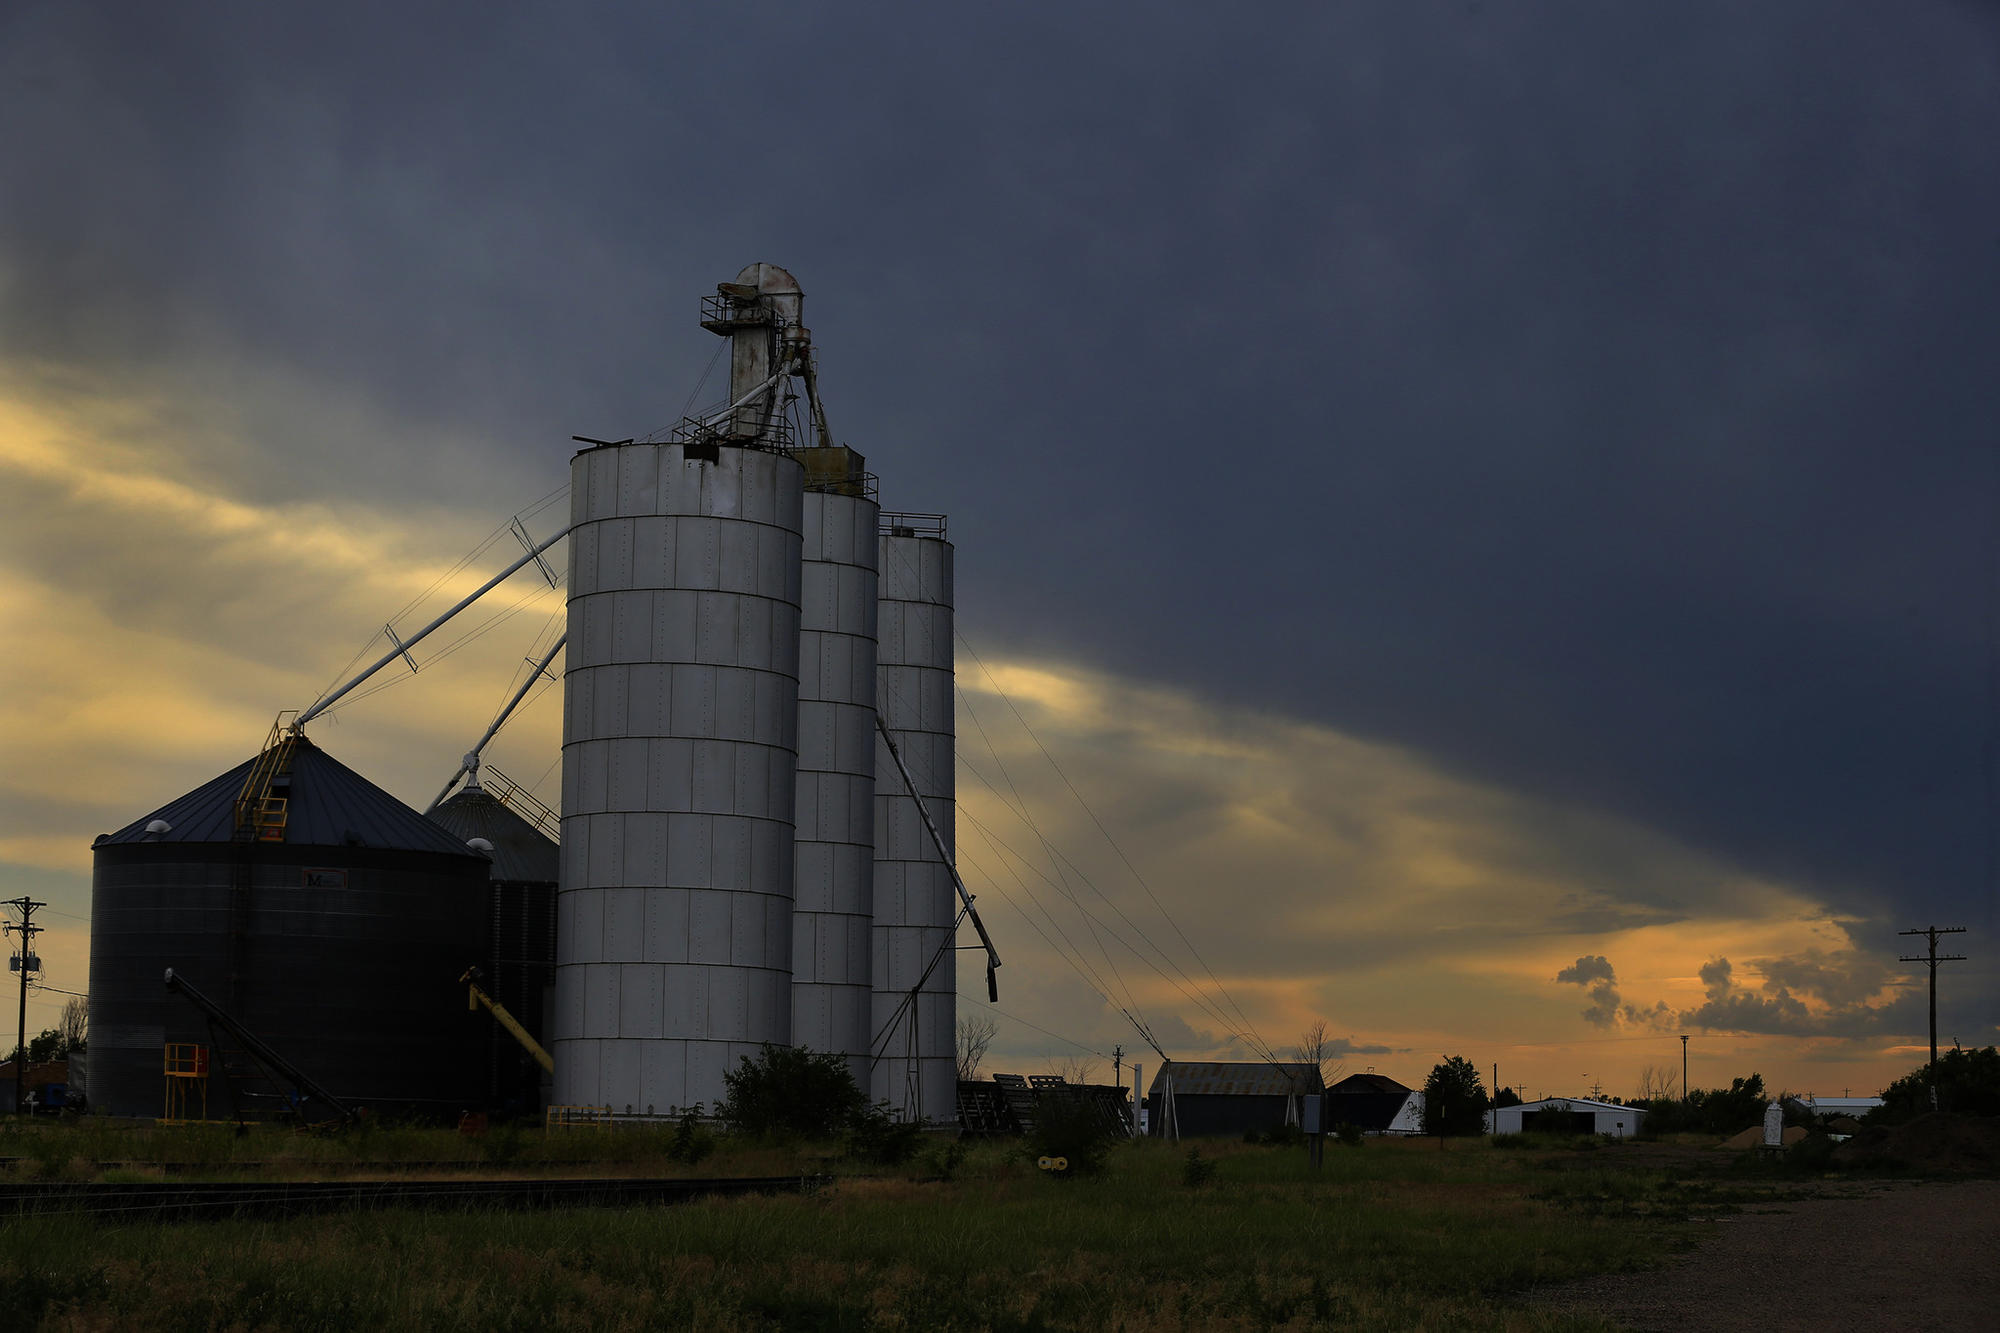 A grain elevator stands tall at sunset in Eads, Colo.